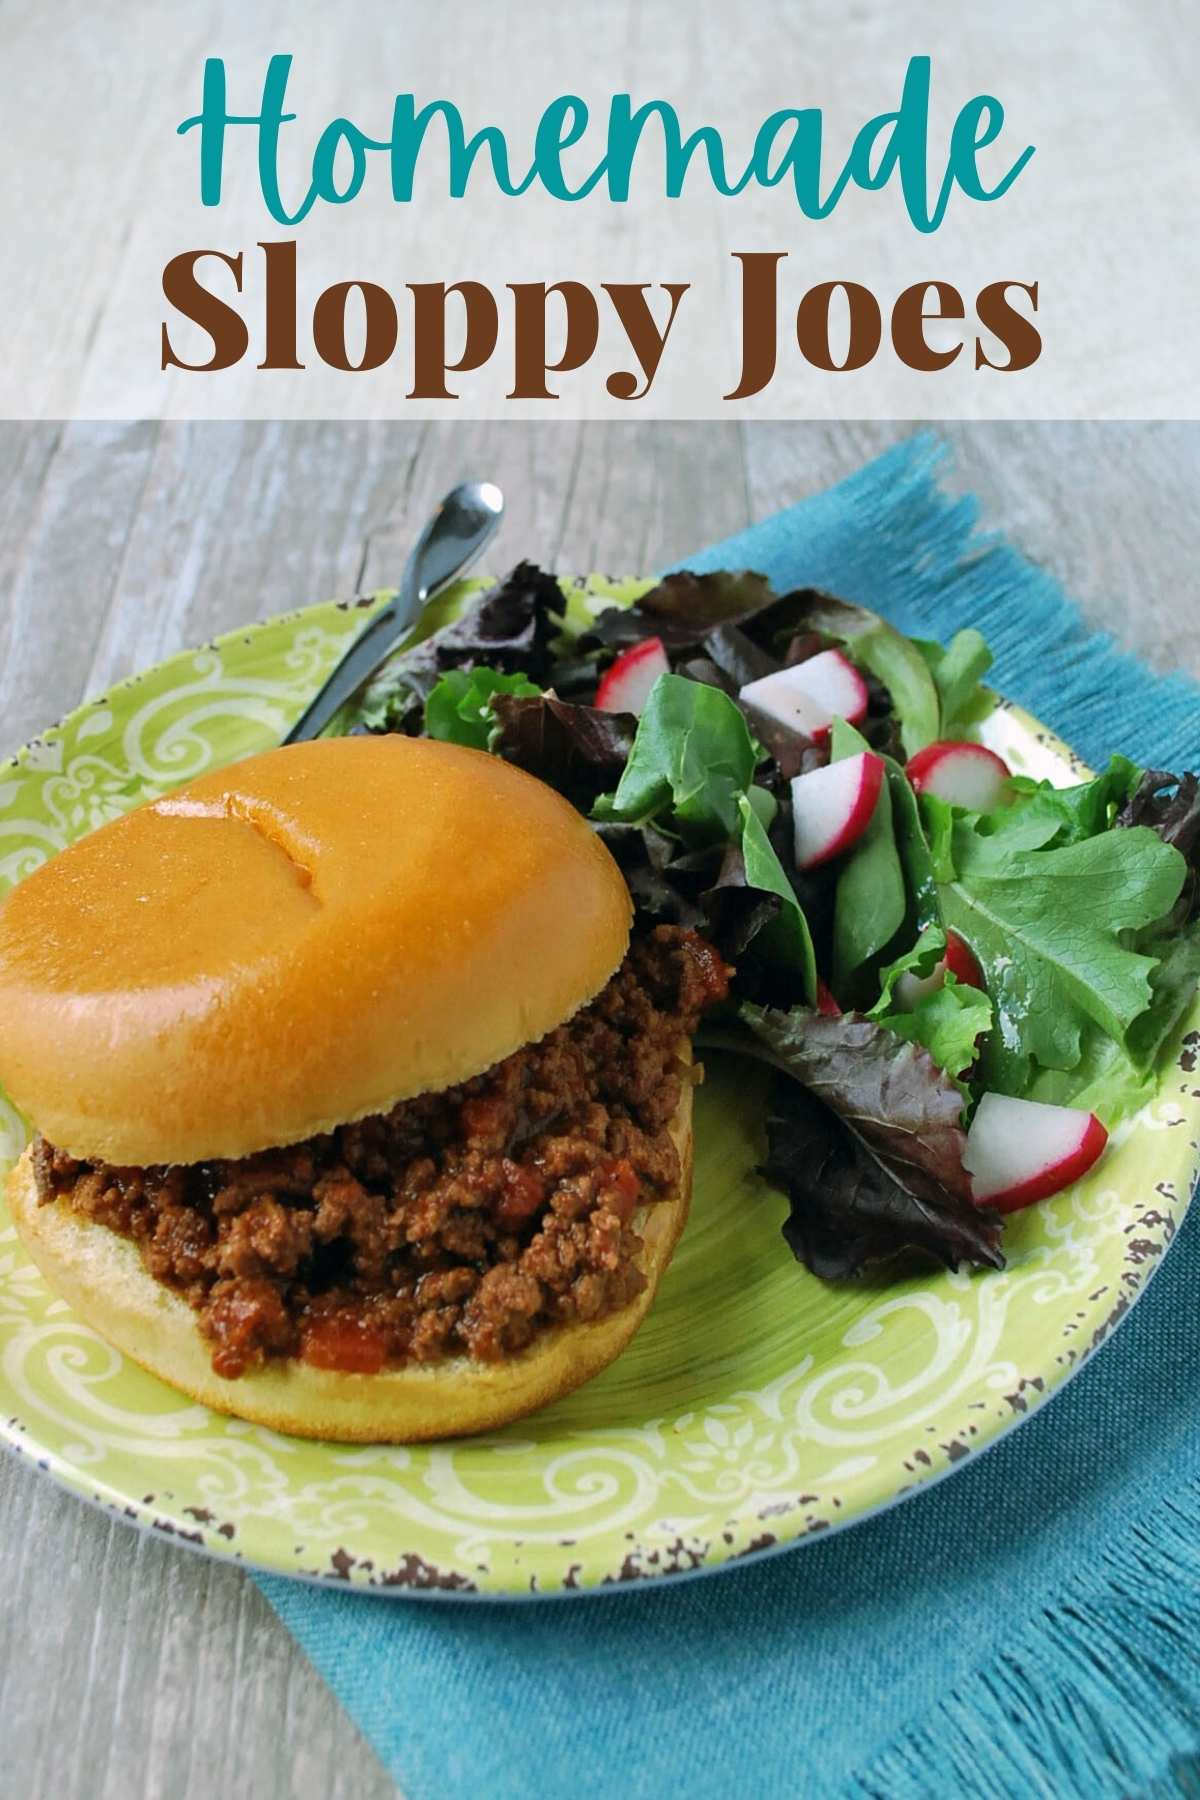 A simple and easy recipe to whip up homemade sloppy joes made with healthier ingredients, such as lean ground beef, fresh garlic, and natural sugar. via @Ameessavorydish